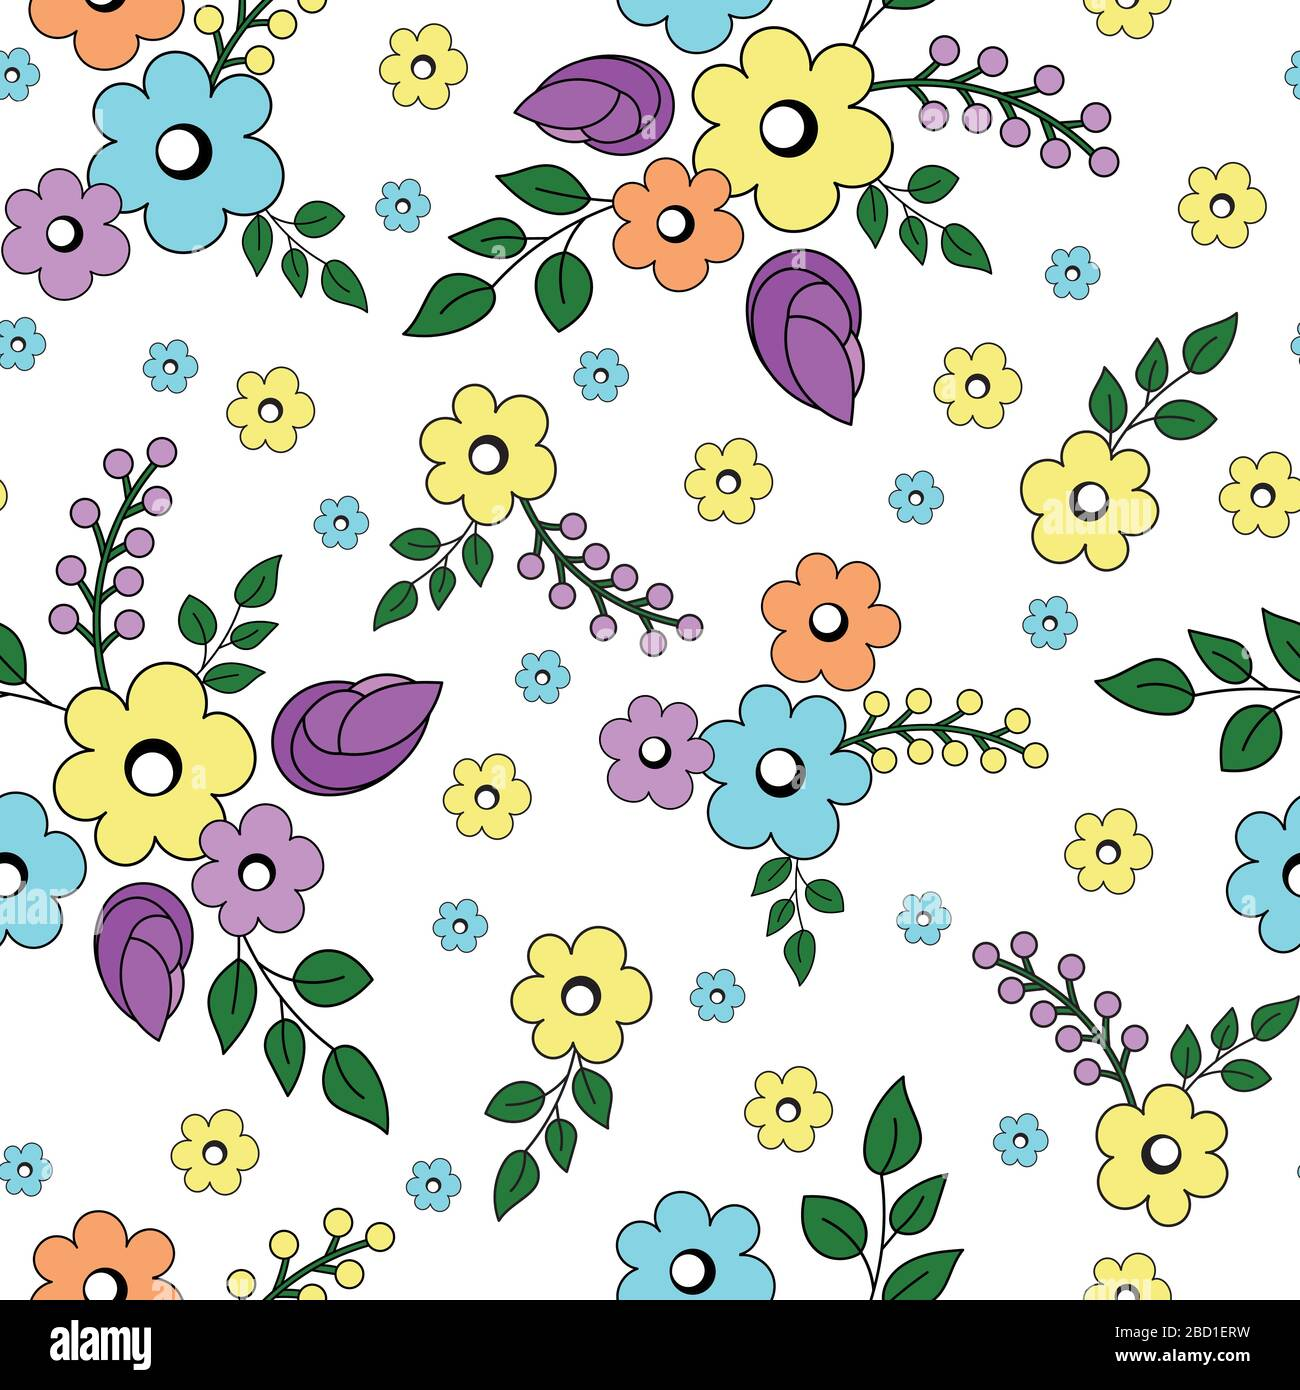 Stylized Cute Pastel Flower Bouquets With Twigs And Leaves Small Flowers On A White Background Seamless Color Vector Pattern Stock Vector Image Art Alamy